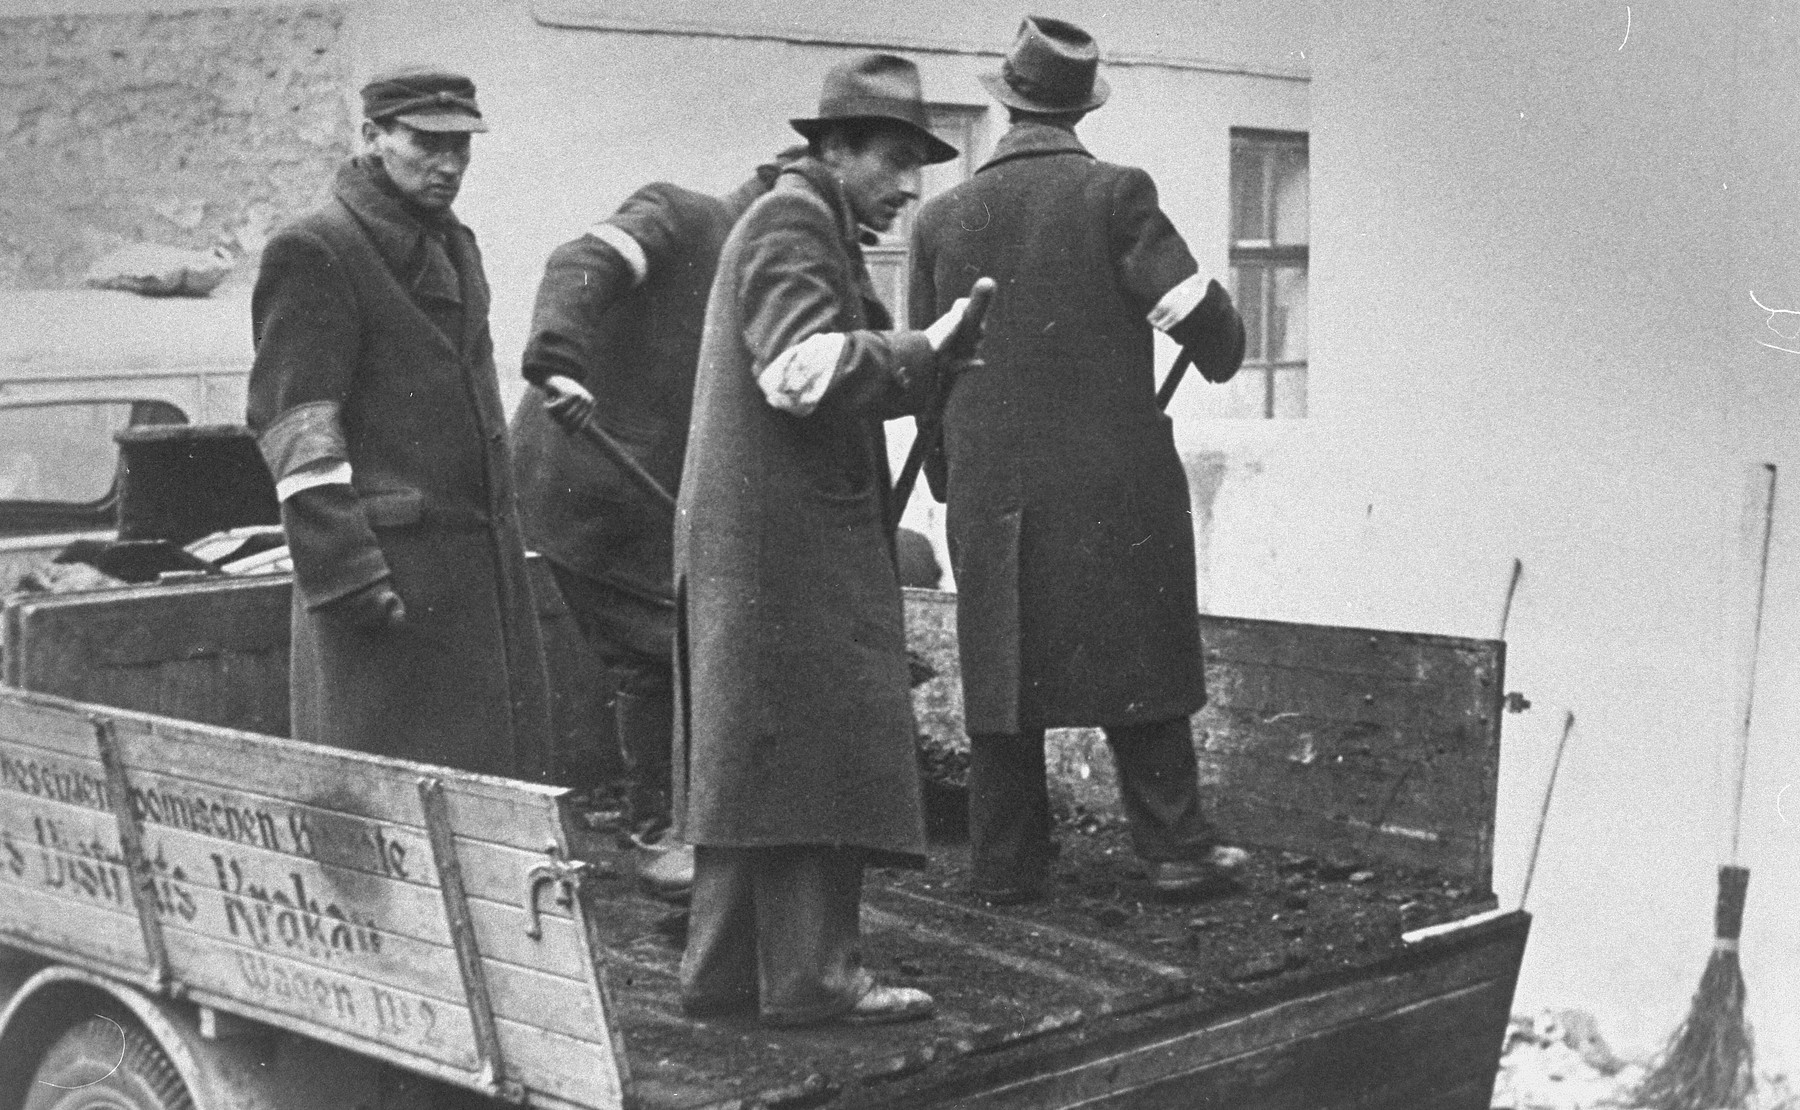 A group of Jewish men wearing armbands, shovel coal off the back of a truck.